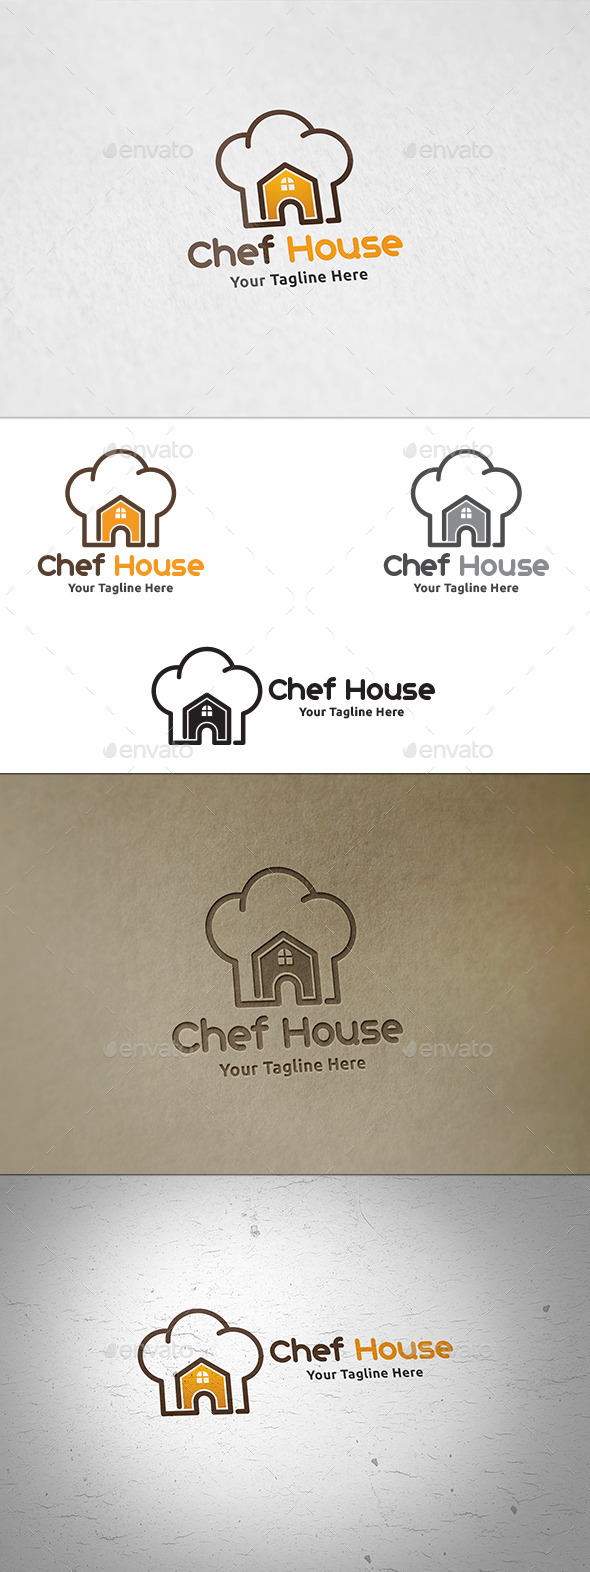 Chef House - Logo Template - Food Logo Templates